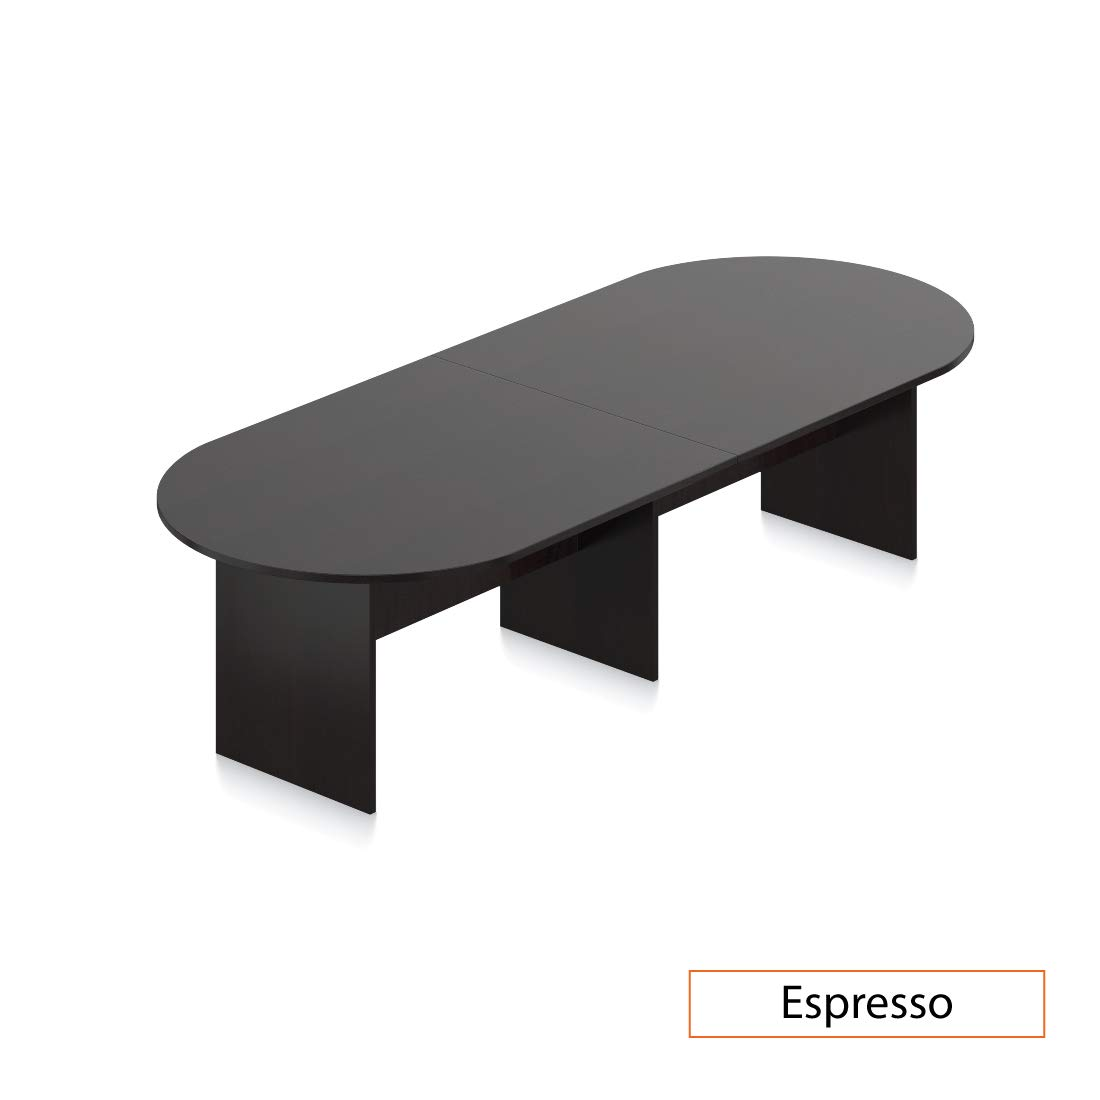 GOF 10 FT Conference Table (120W x 48D x 29.5H), Espresso